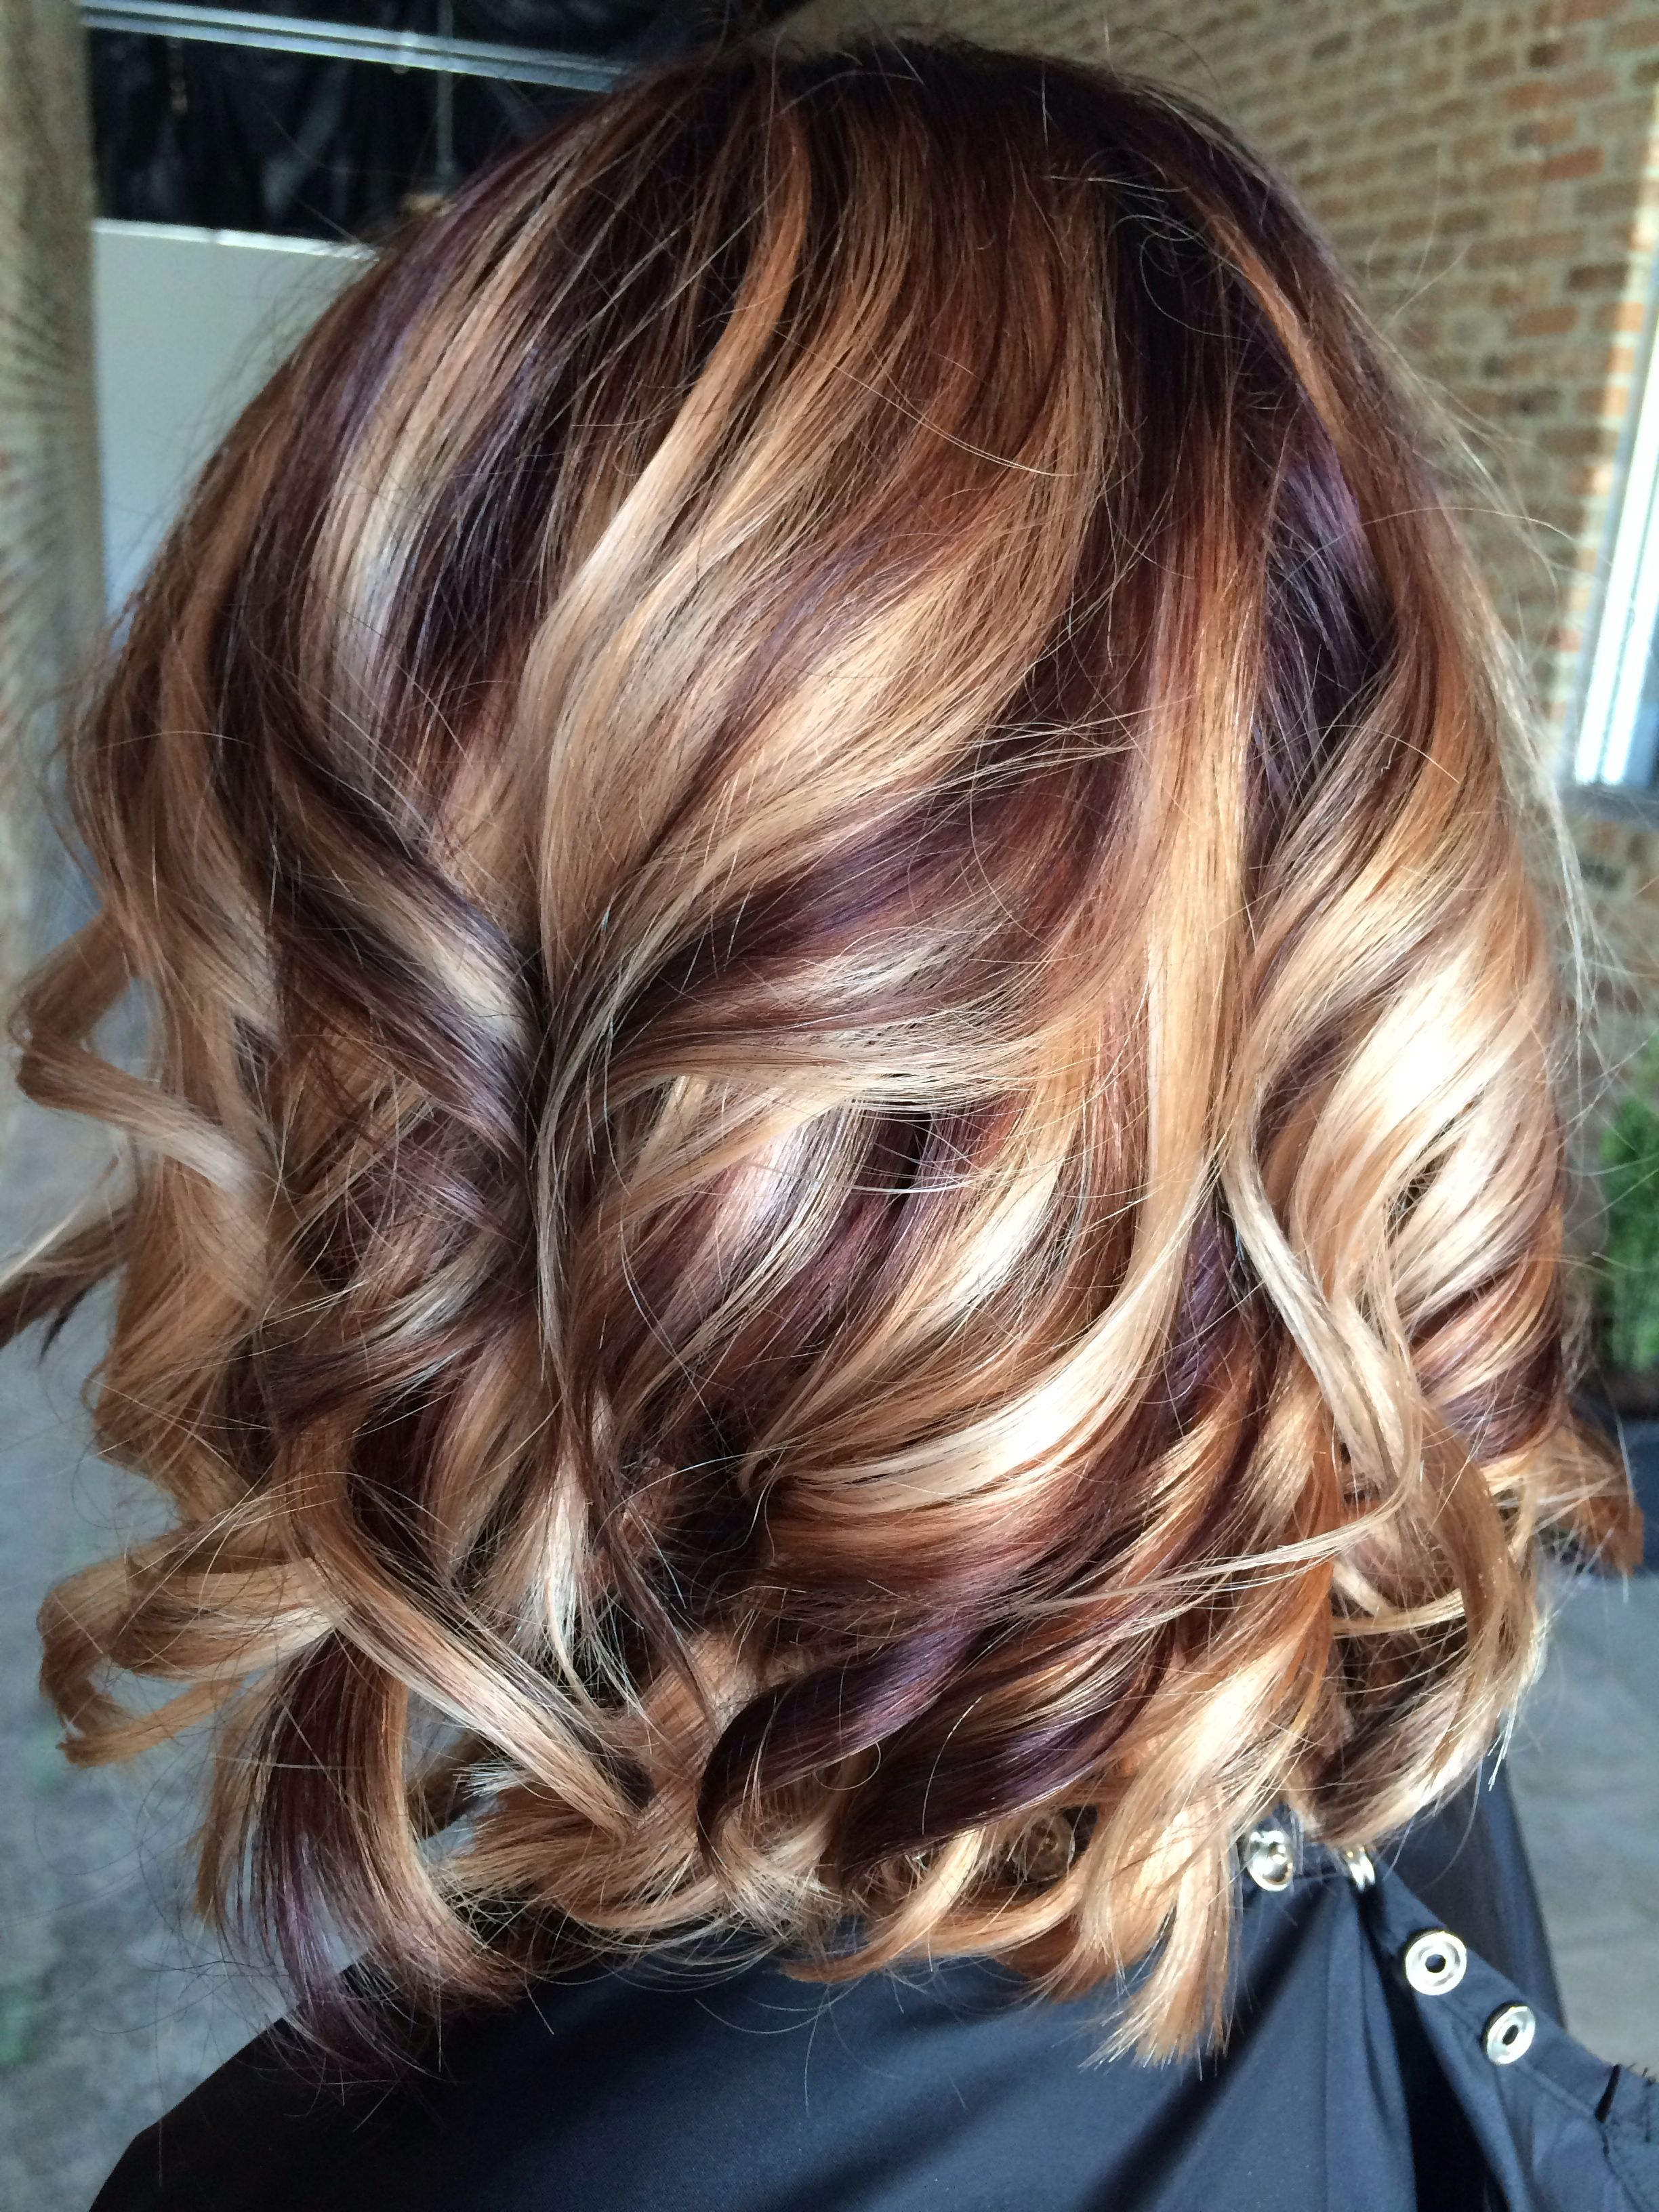 Short Hairstyles With Highlights And Lowlights Stunning Ribbons Of Color Mahogany Violet And Blonde Hairjordan I Love